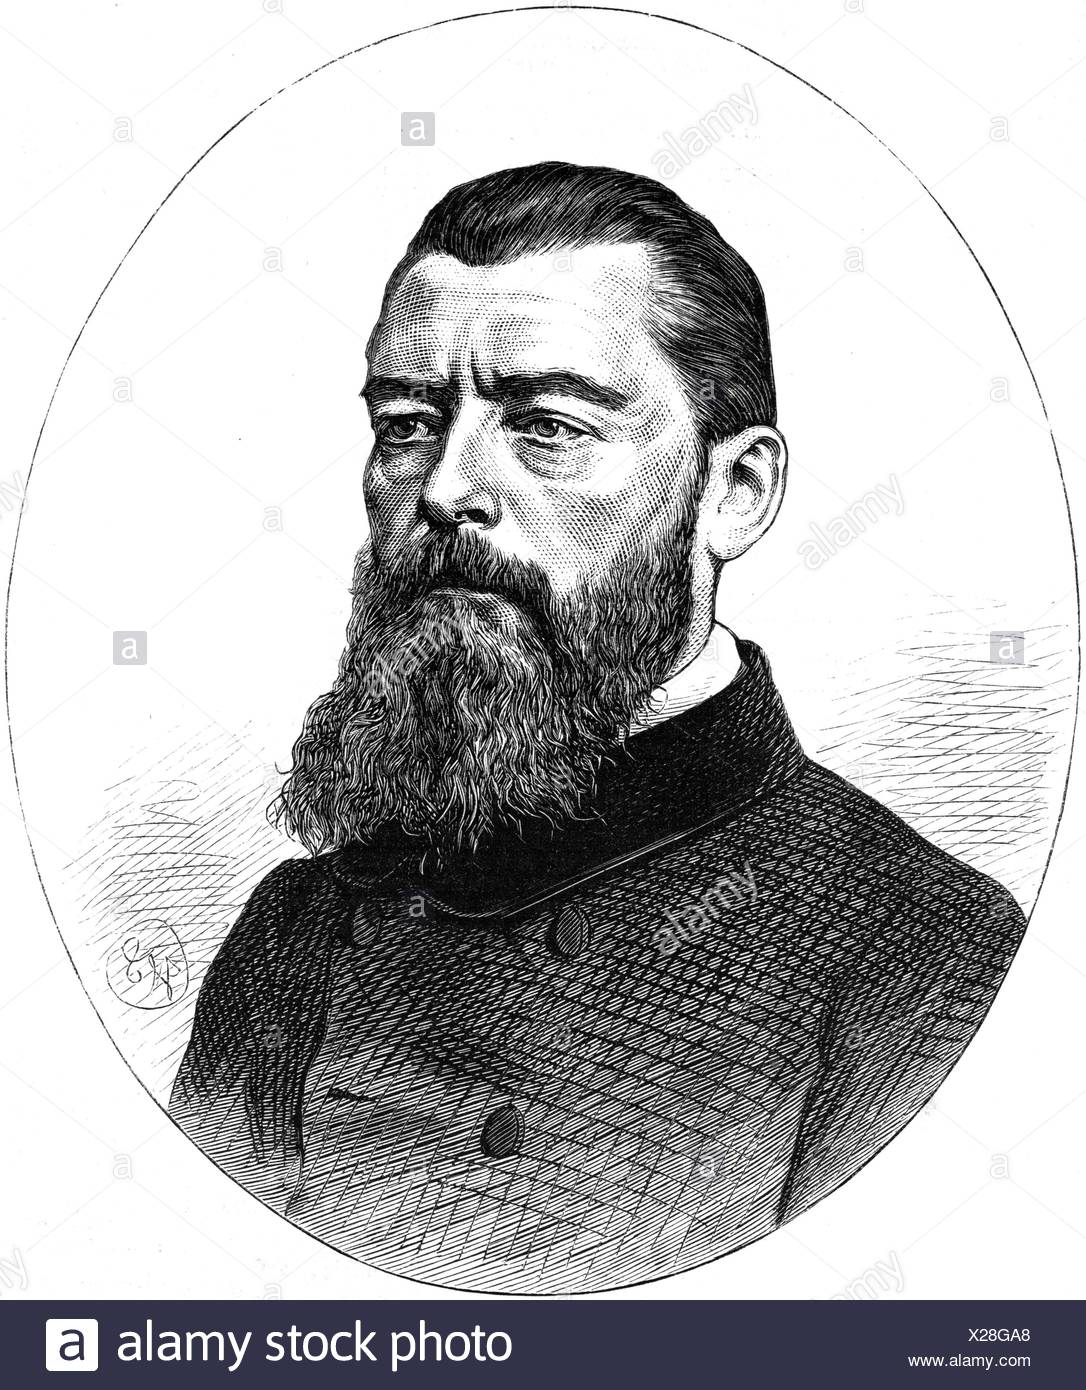 Feuerbach, Ludwig, 28.7.1804 - 13.9.1872, German philosopher, portrait, wood engraving, published in 1872, Additional-Rights-Clearances-NA - Stock Image